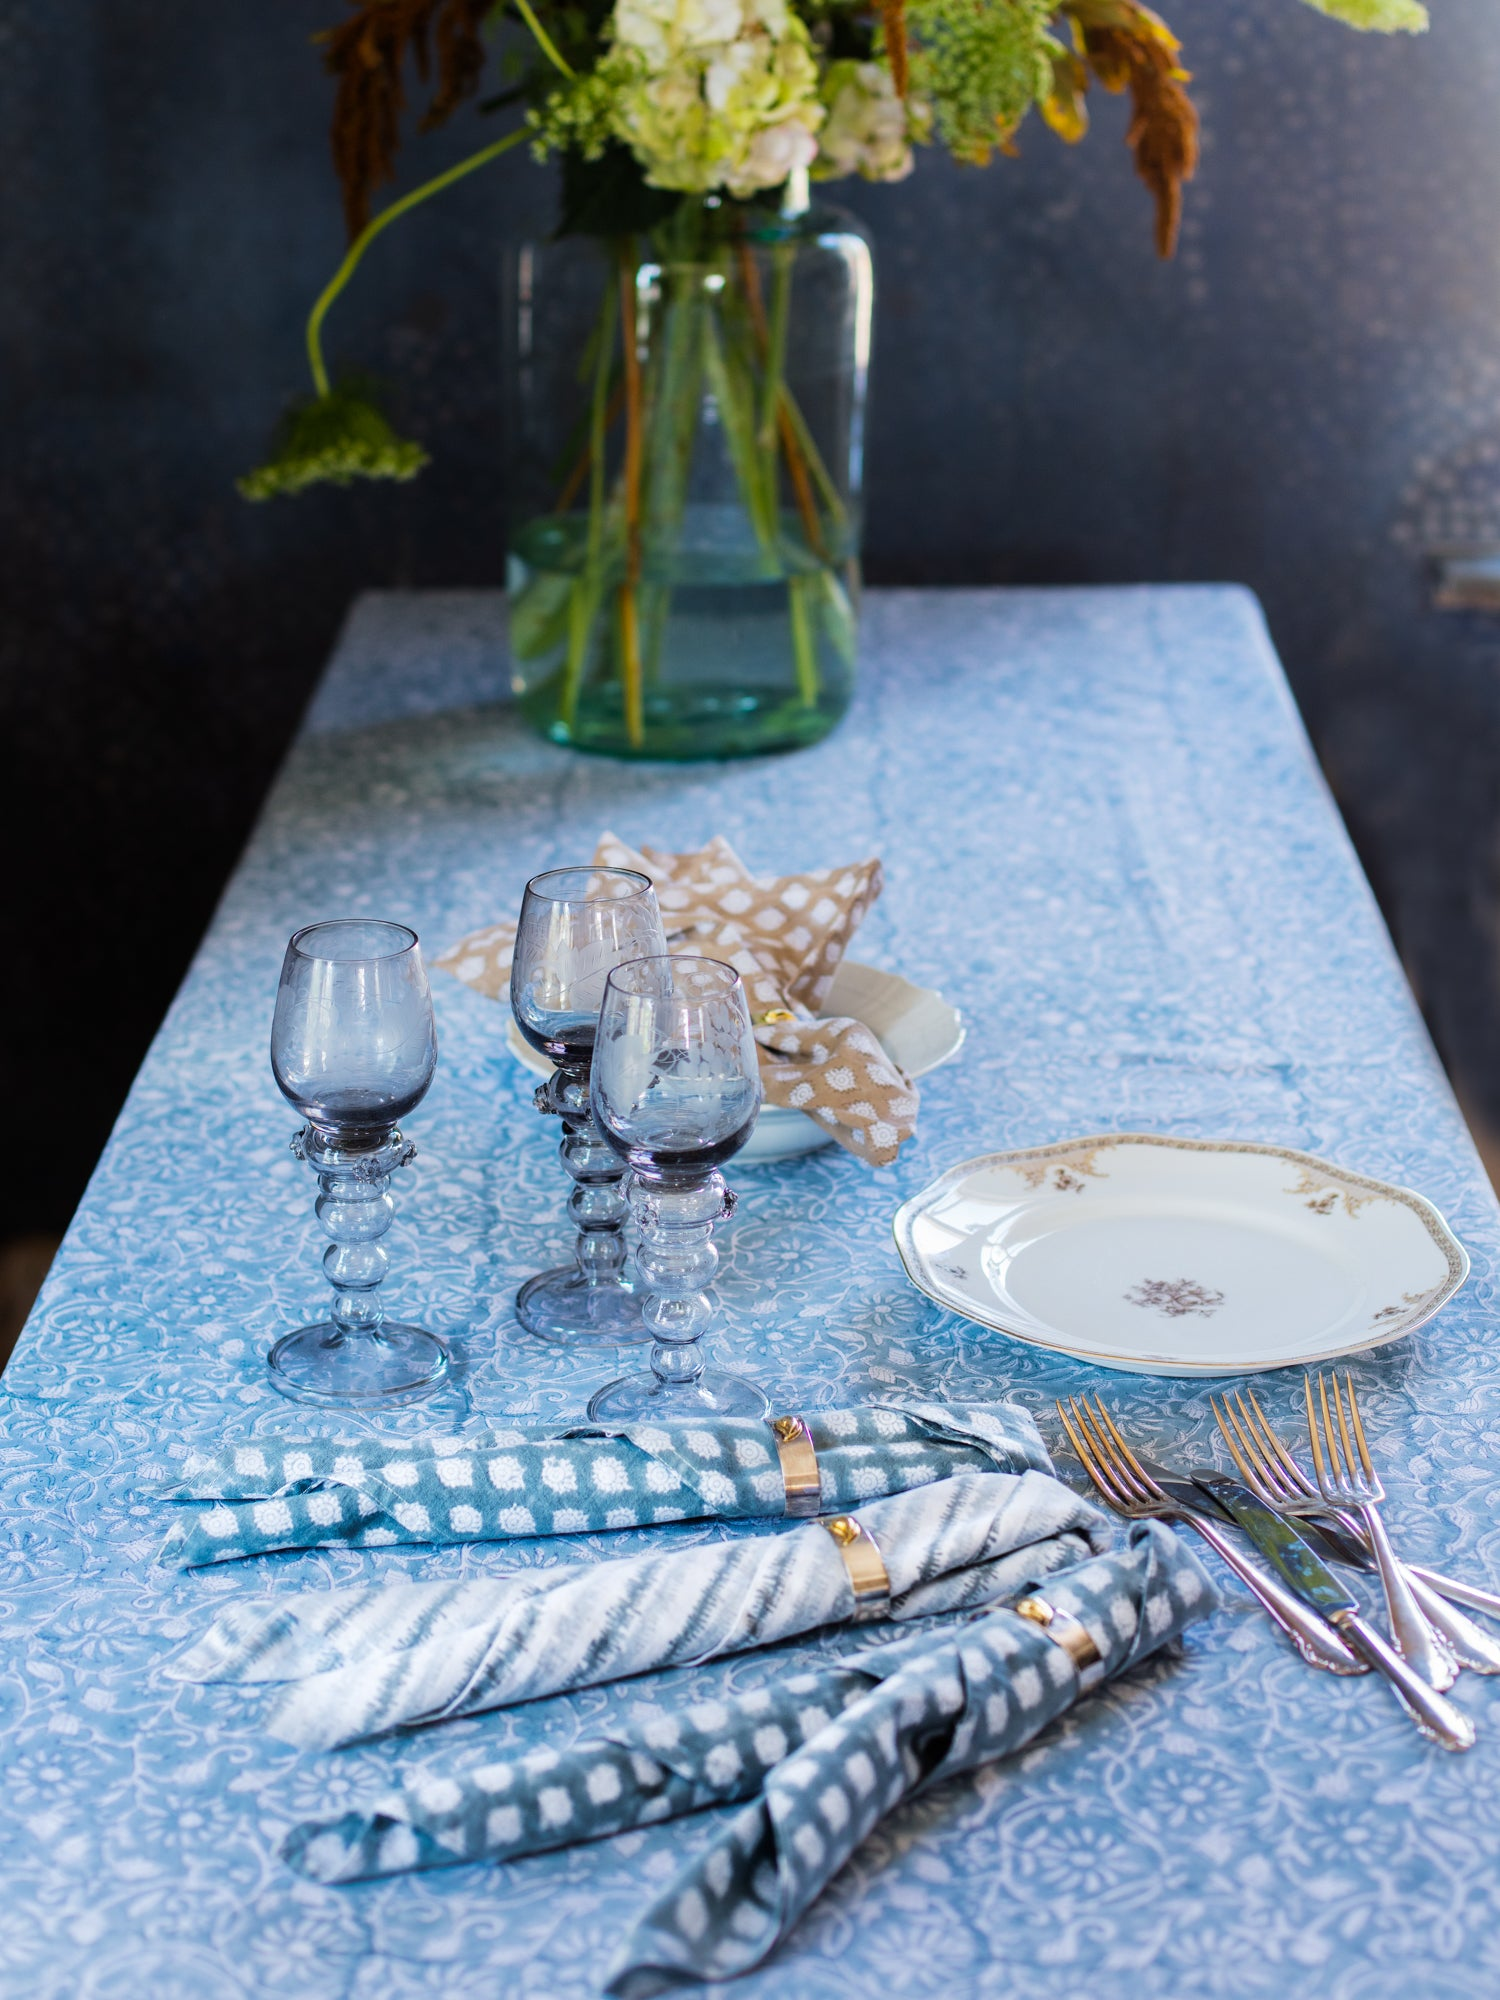 Margerita Tablecloth in Cashmere Blue